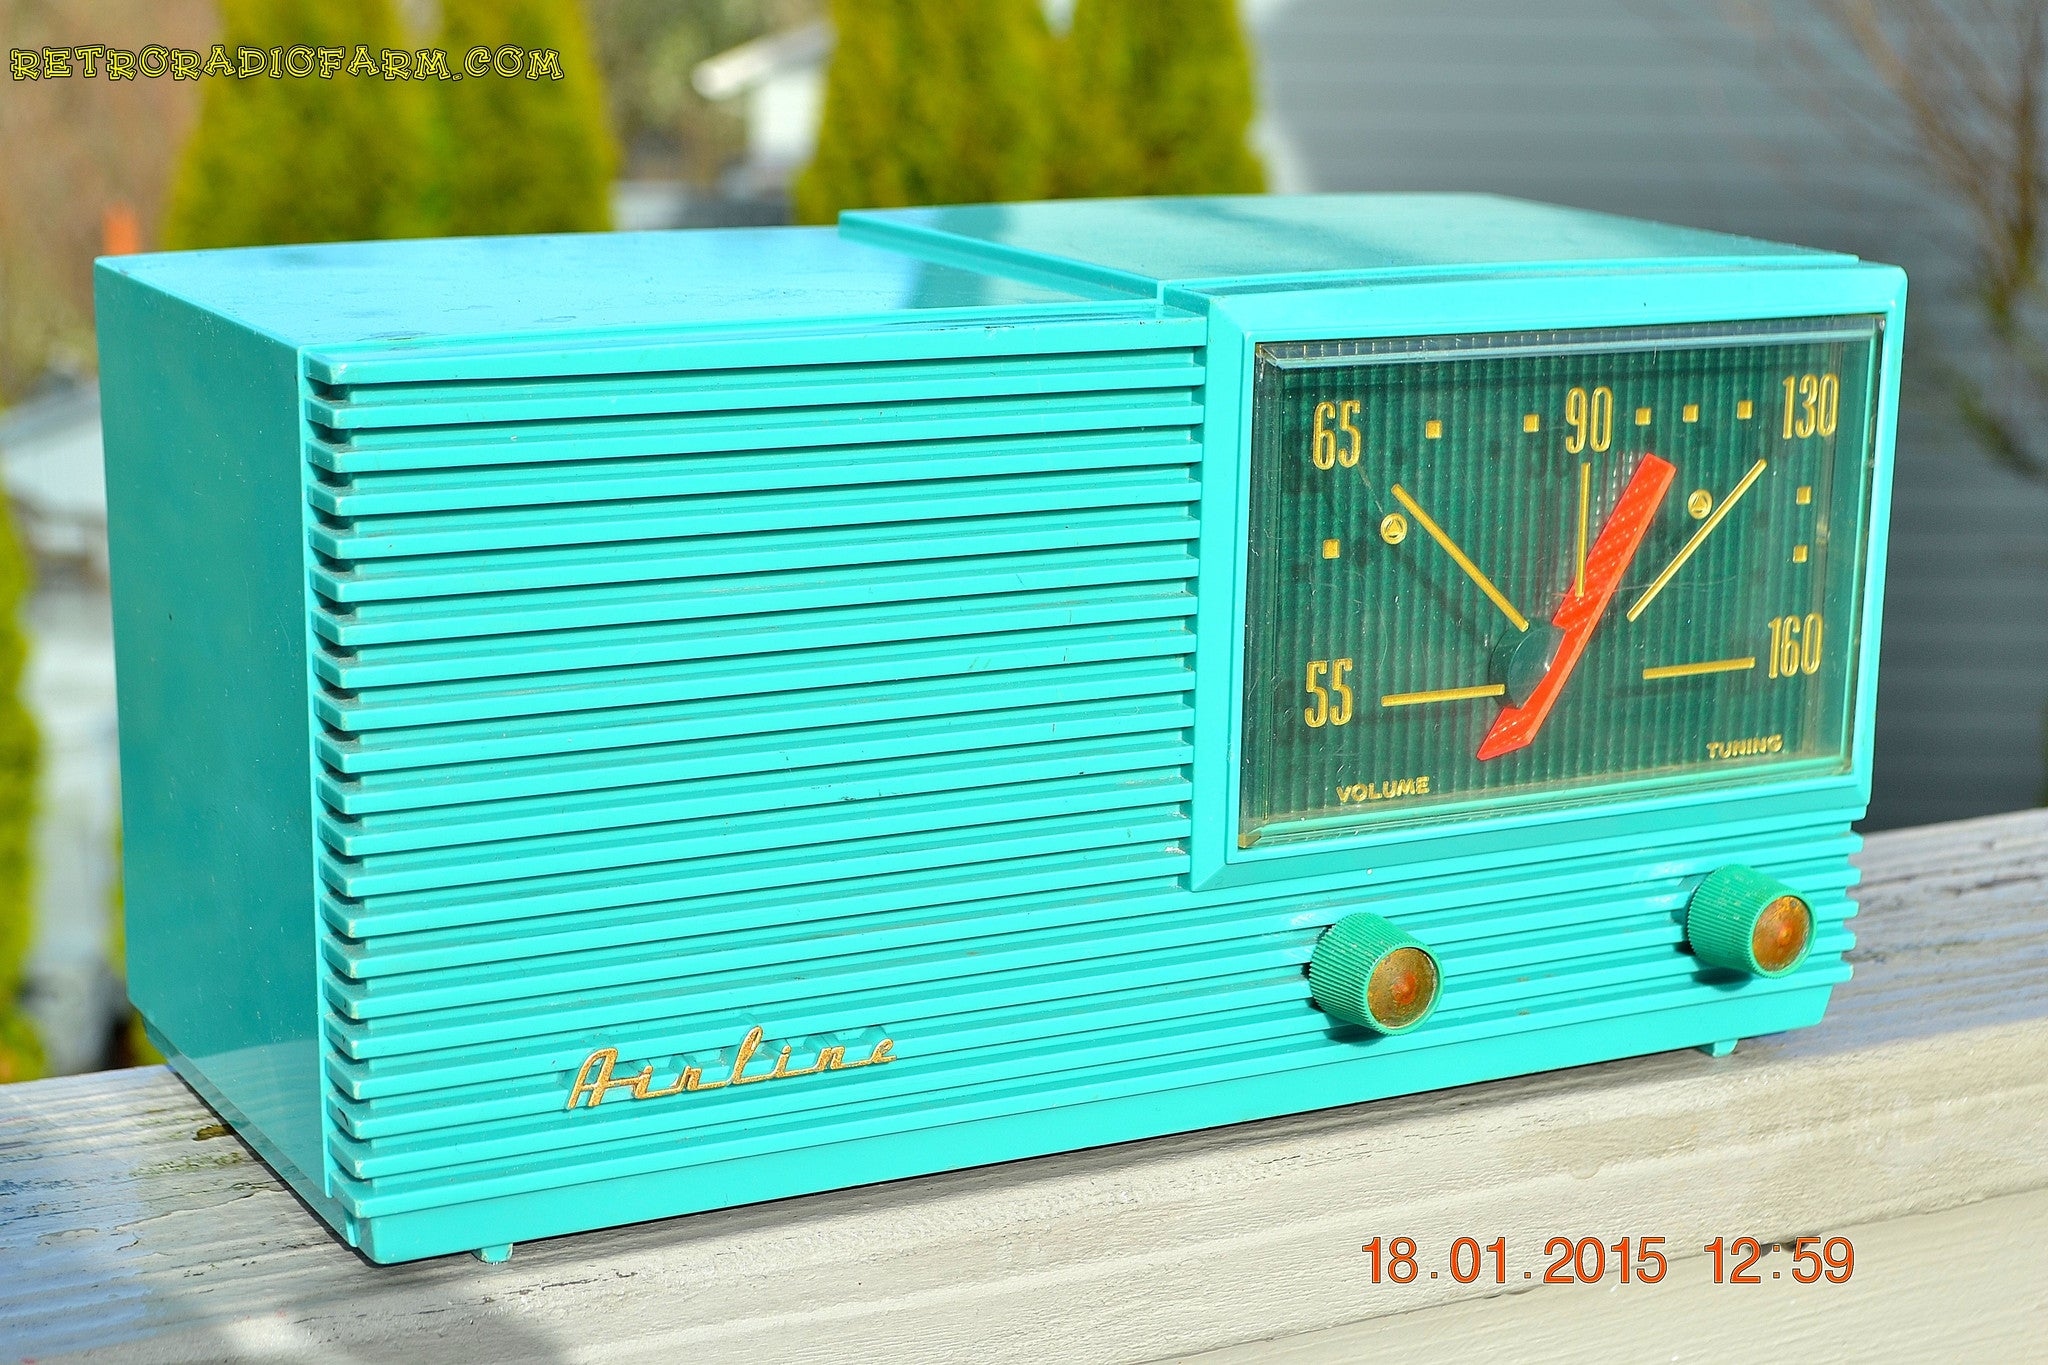 SOLD! - March 22, 2015 - MID CENTURY MARVEL Retro Jetsons Vintage Turquoise 1959 Airline DSE1625A AM Tube Radio Totally Restored! - [product_type} - Airline - Retro Radio Farm